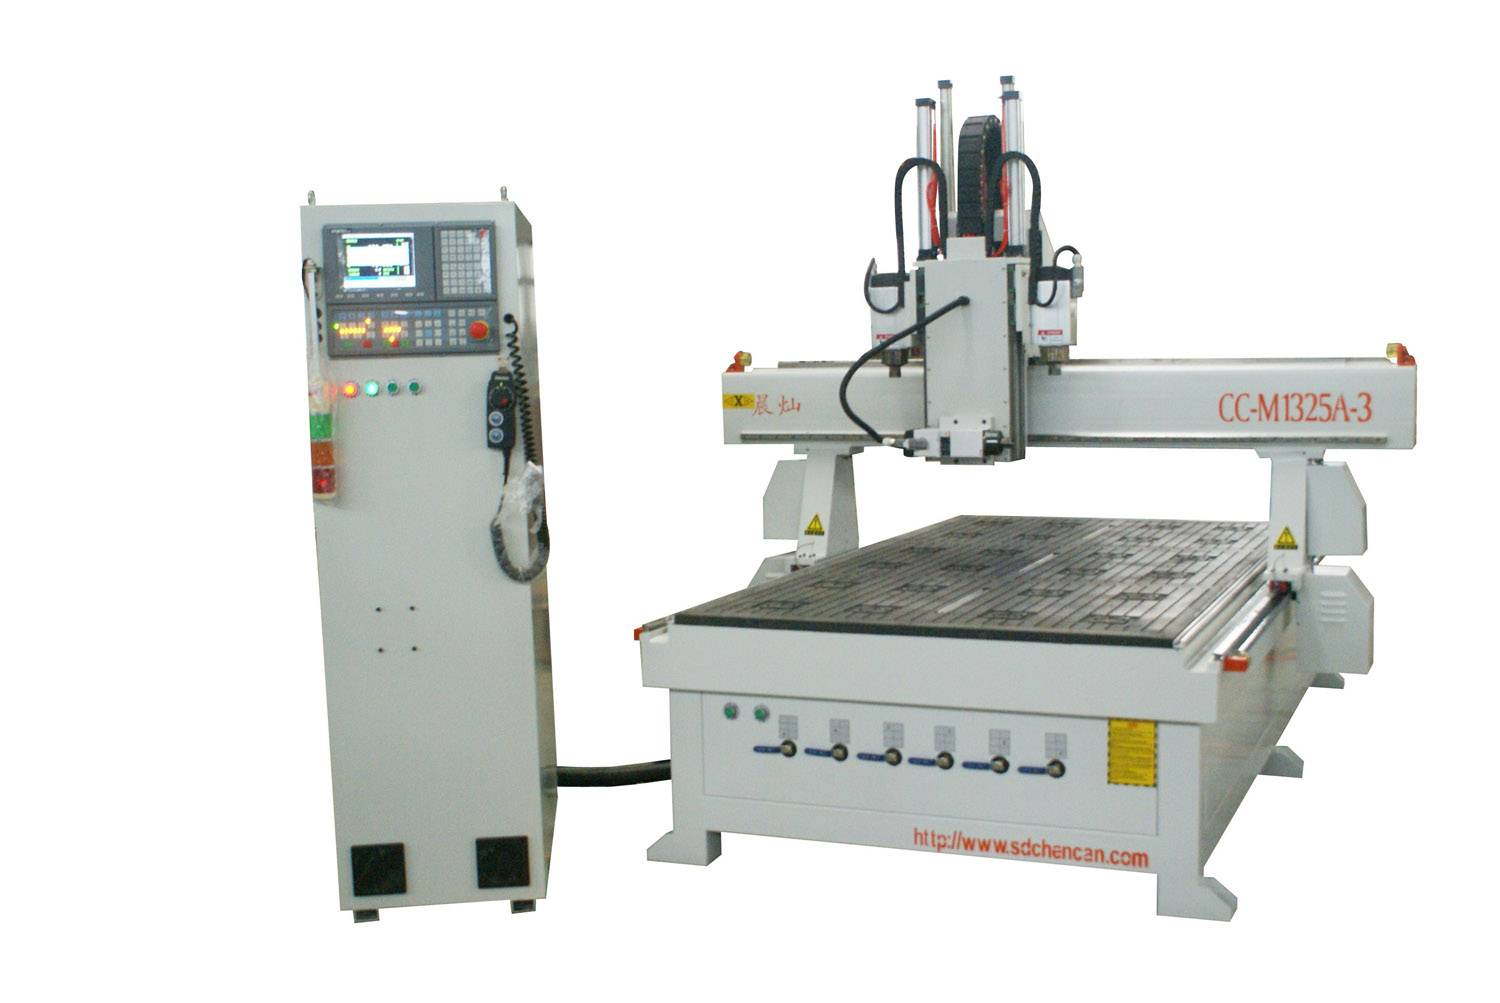 Three workstages wood CNC router with two sides drrlling Head